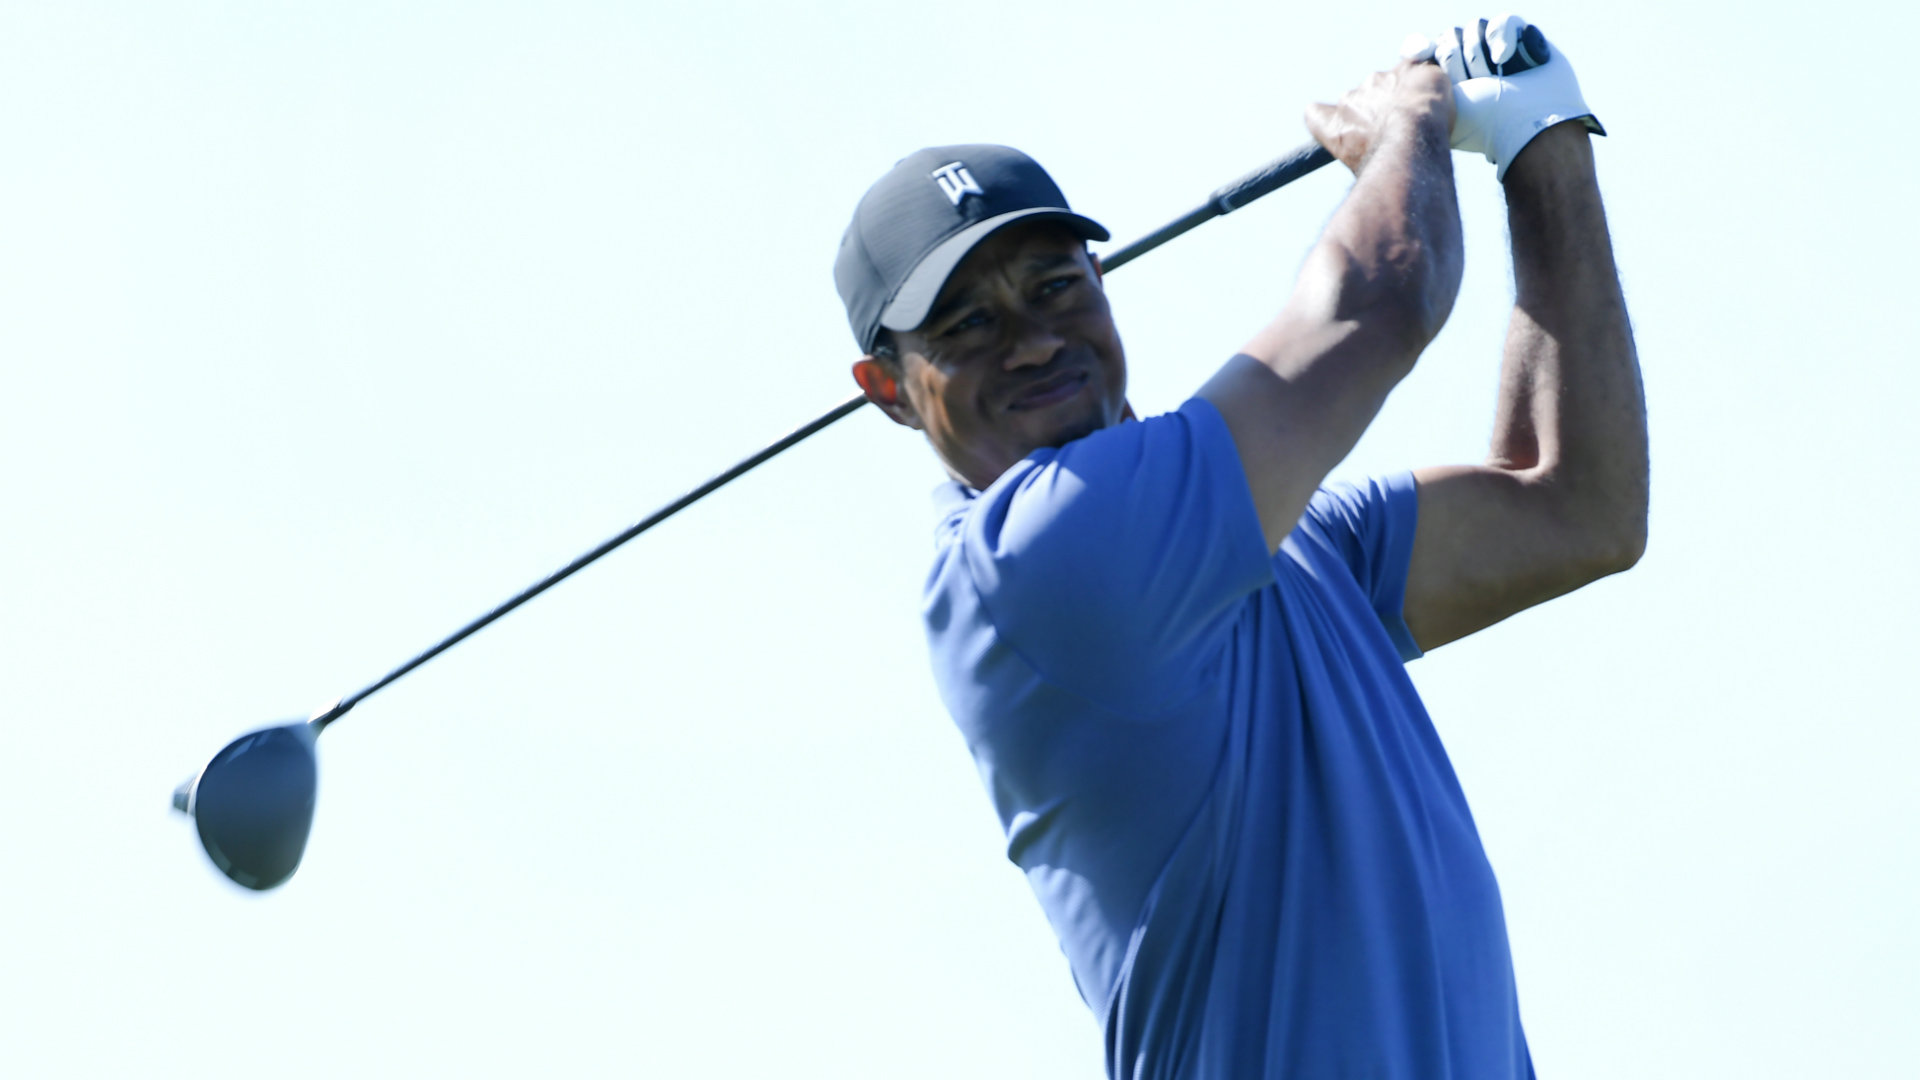 Woods three off the lead after opening 69 at Torrey Pines